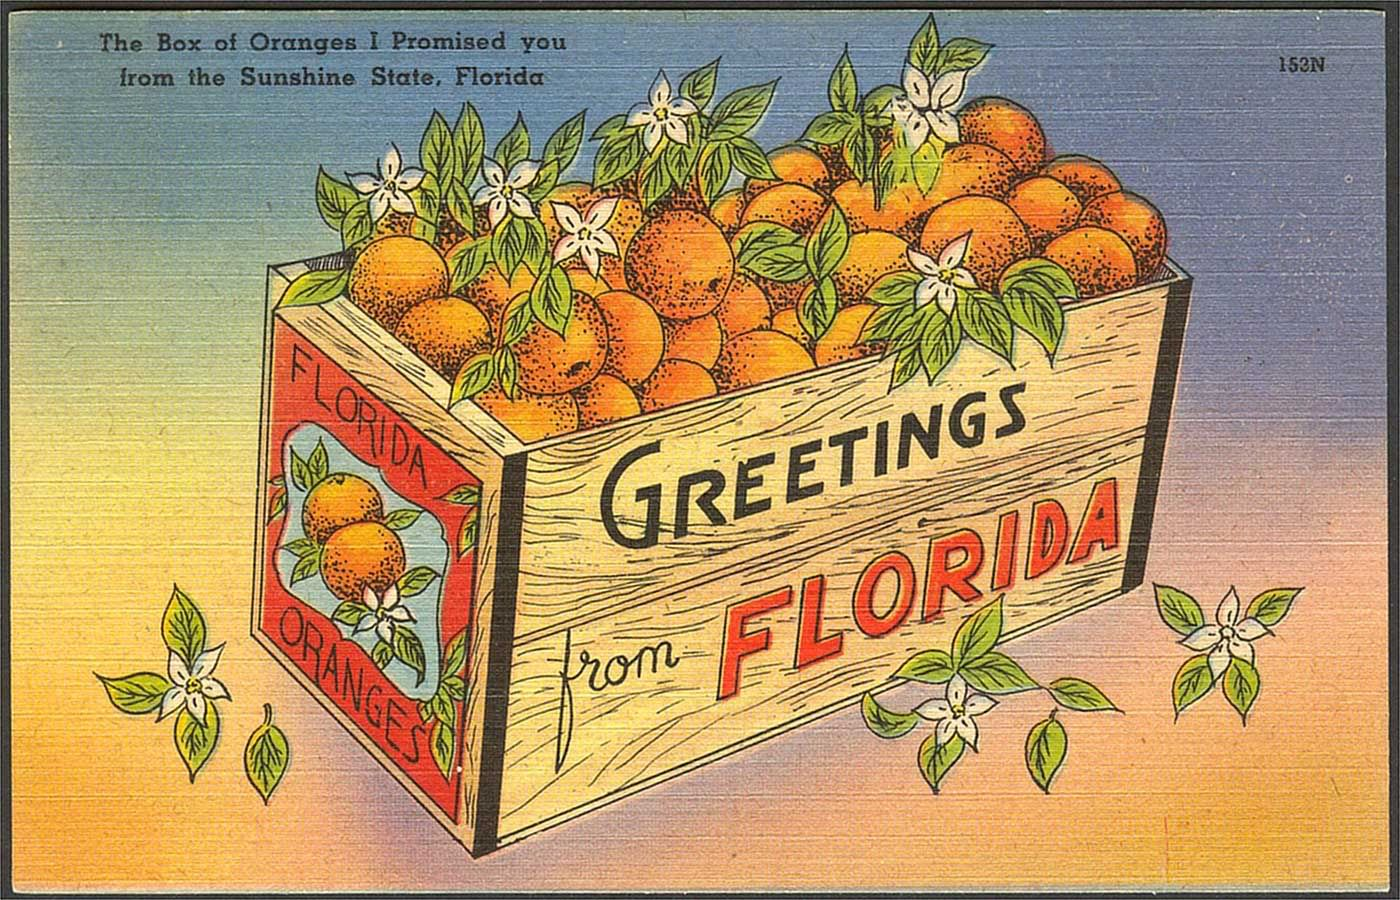 Greetings from florida old florida pinterest sunshine state greetings from florida kristyandbryce Image collections